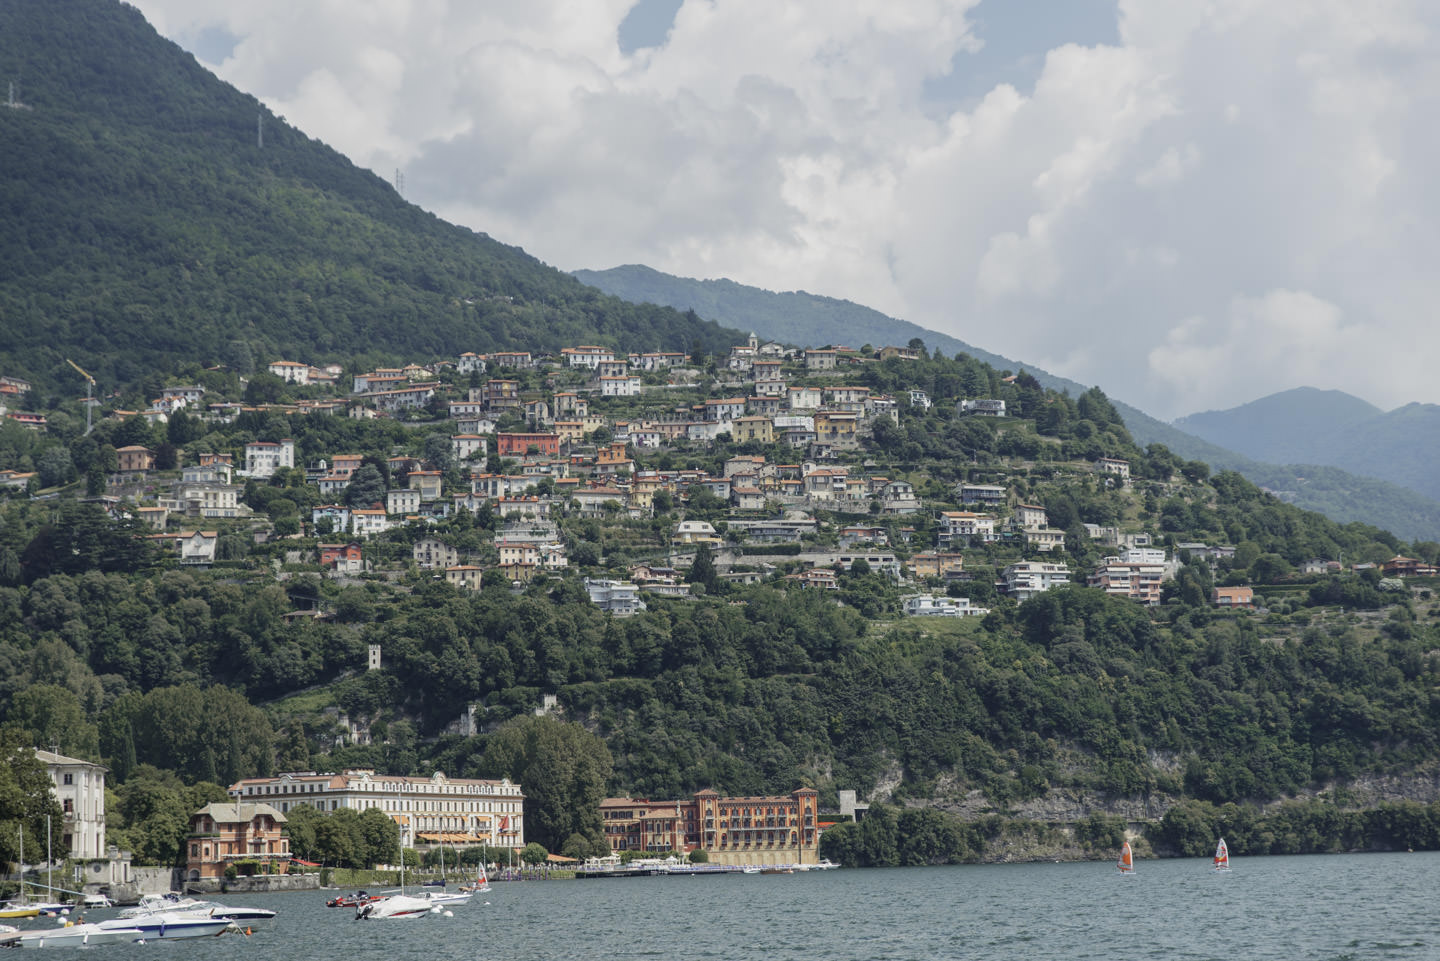 Blog-Mode-And-The-City-Lifestyle-Voyage-Italie-Trieste-Padoue-lac-Come-Verone-29